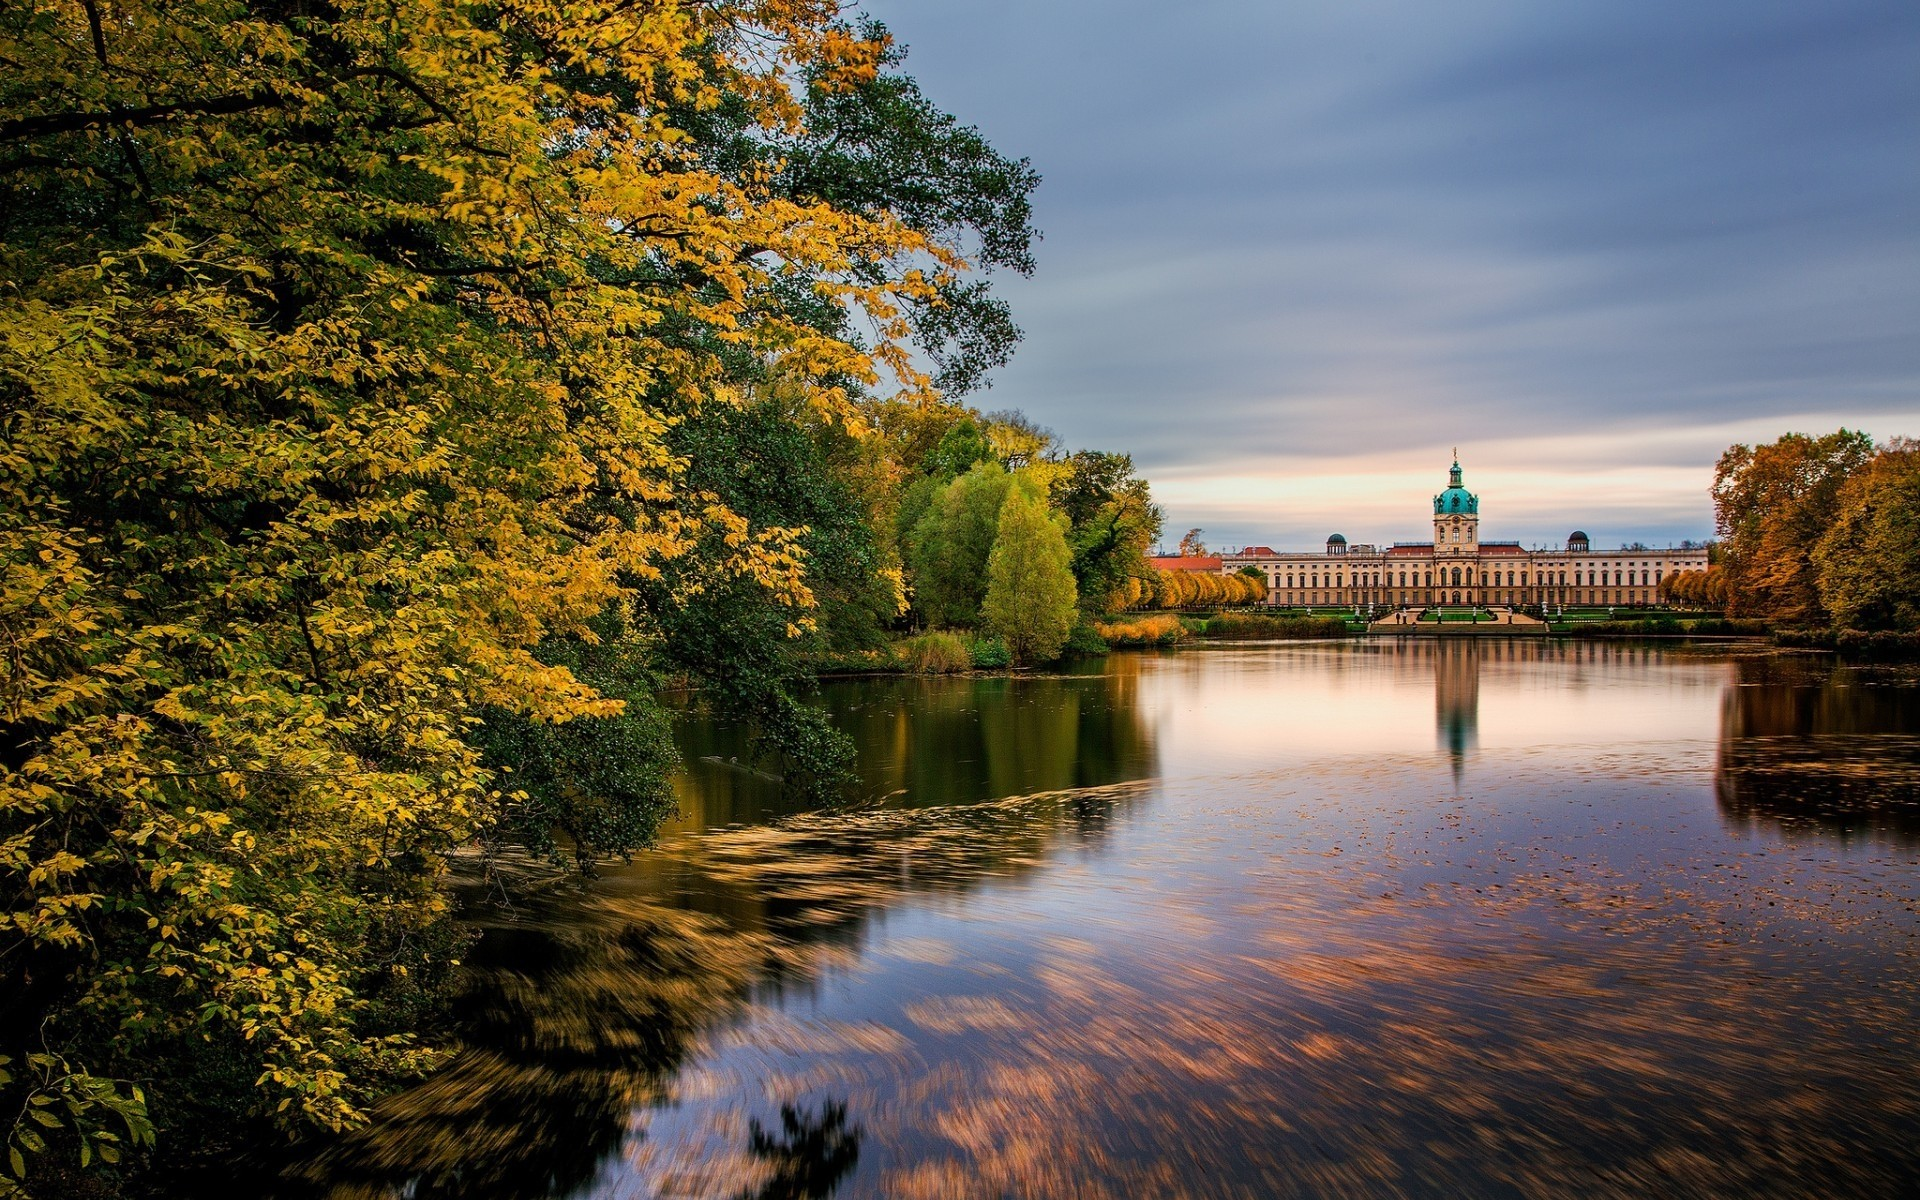 germany water tree lake river fall outdoors nature reflection landscape dawn leaf park travel wood evening sunset pool sky schloss charlottenburg berlin castel